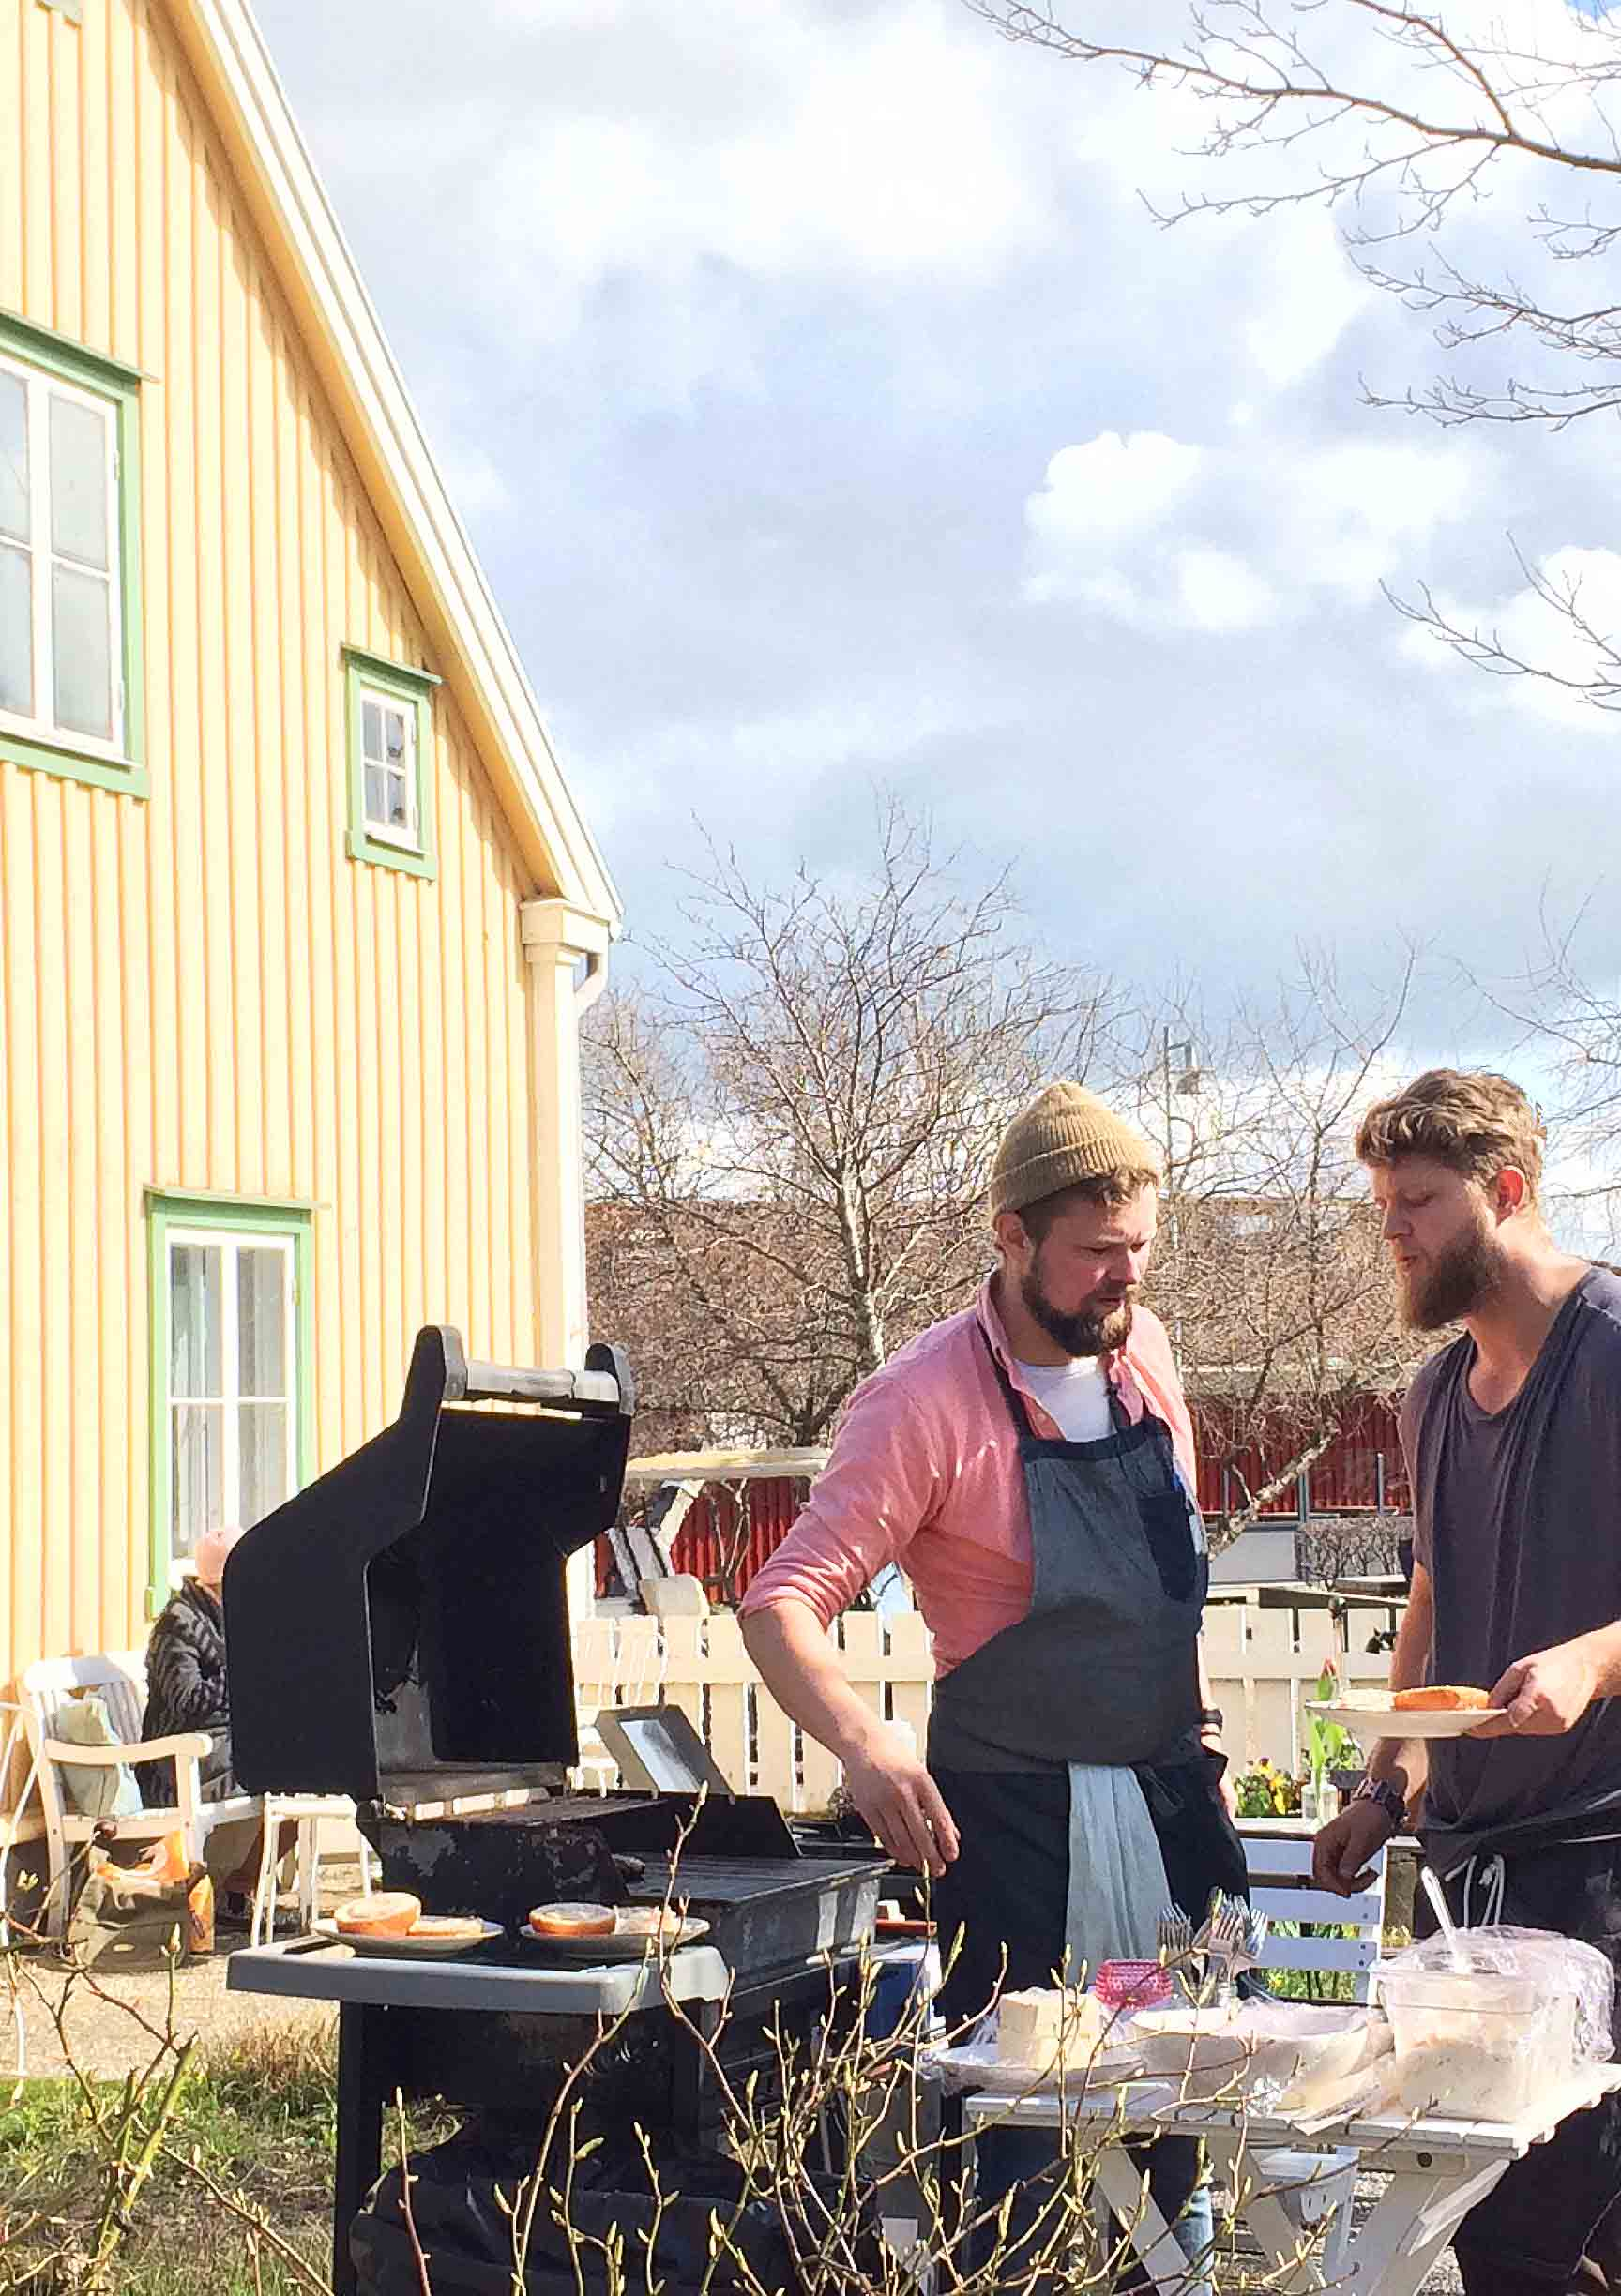 Two men outside at a BBQ with a yellow house in the background